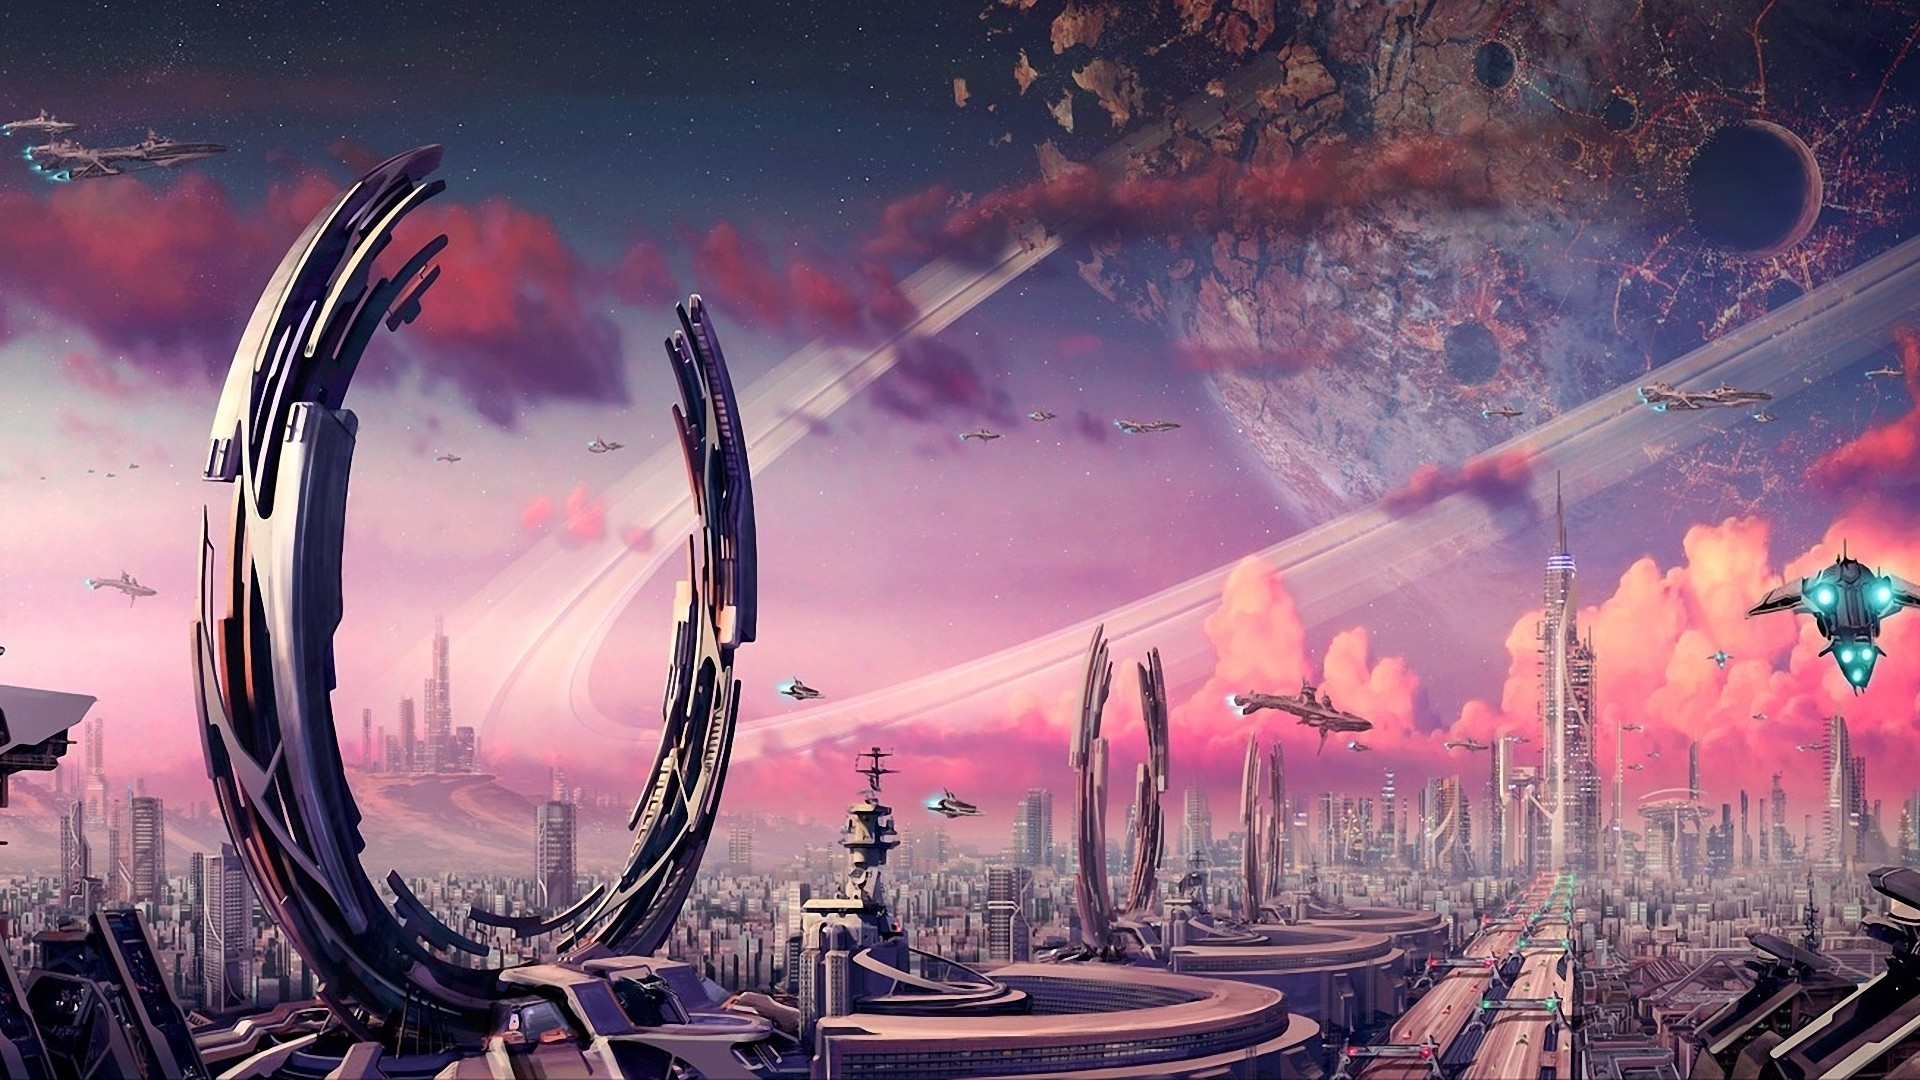 Futuristic planets fantasy art spaceships science fiction ...